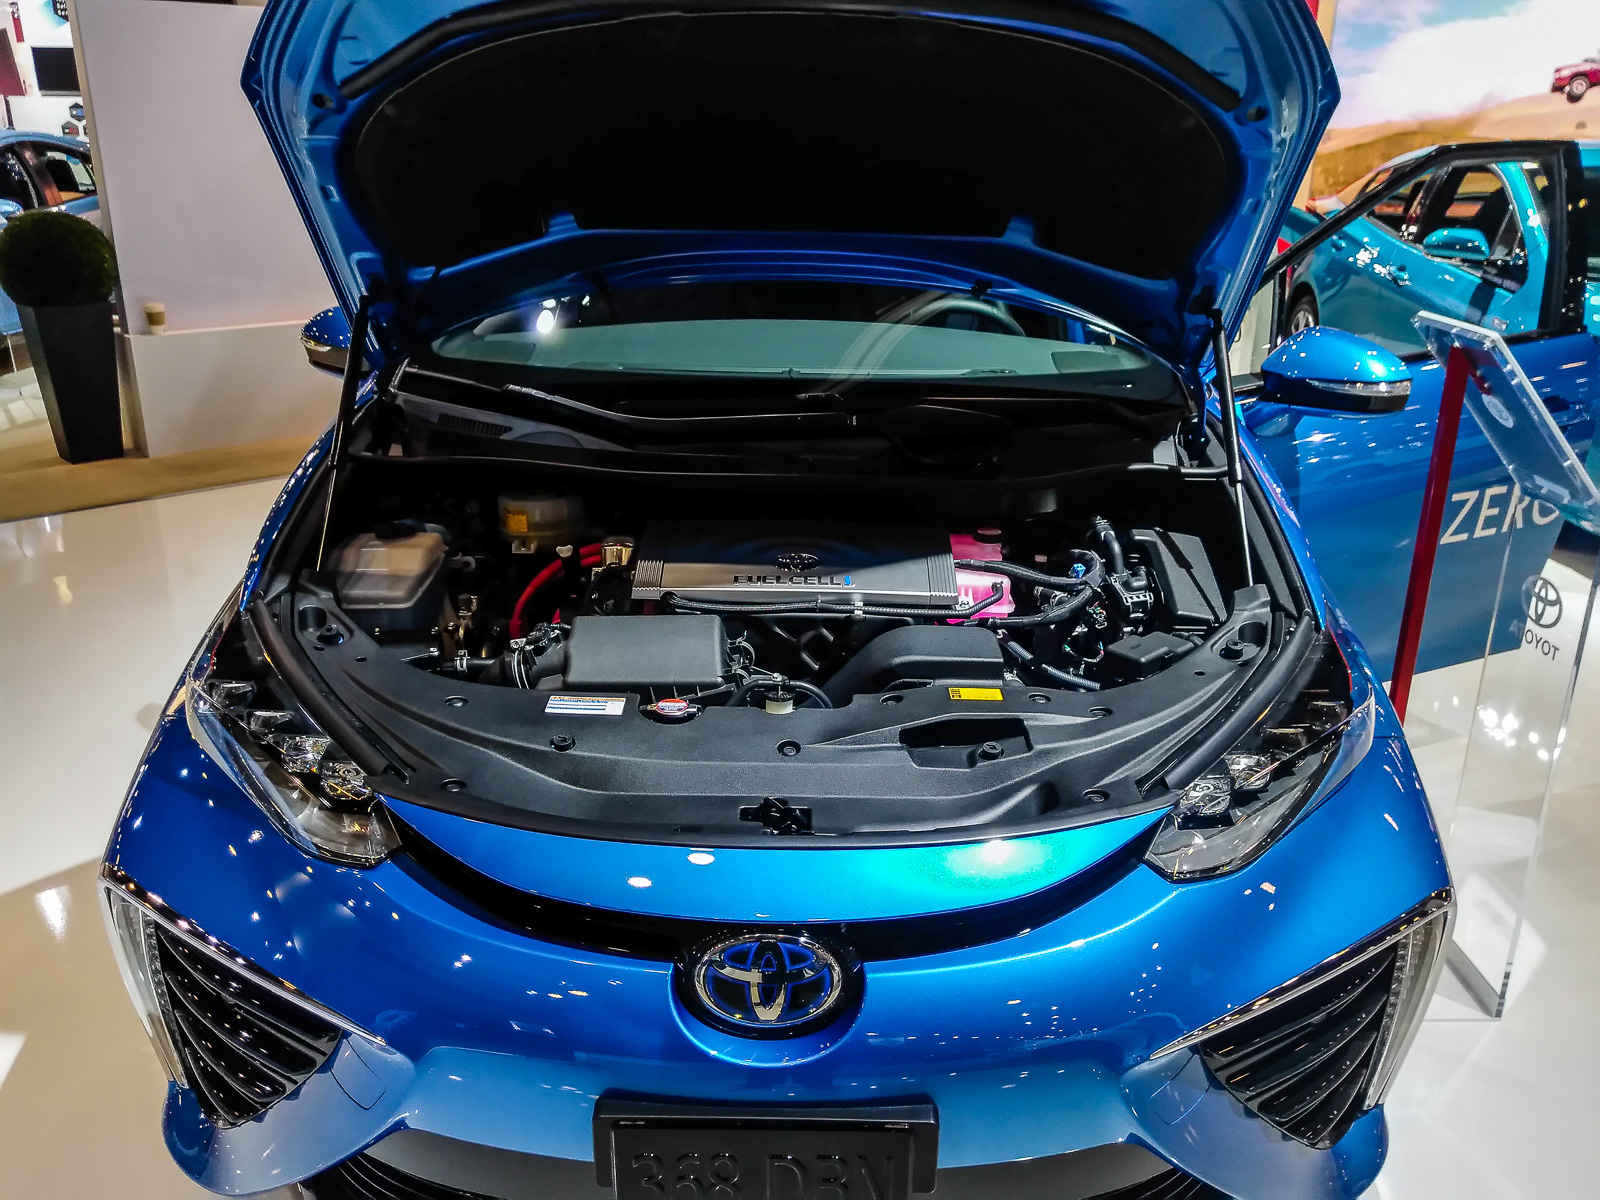 2018 toyota mirai. the miraiu0027s fuel cell stack combines hydrogen gas with oxygen to produce electricity that powers electric motor 2018 toyota mirai